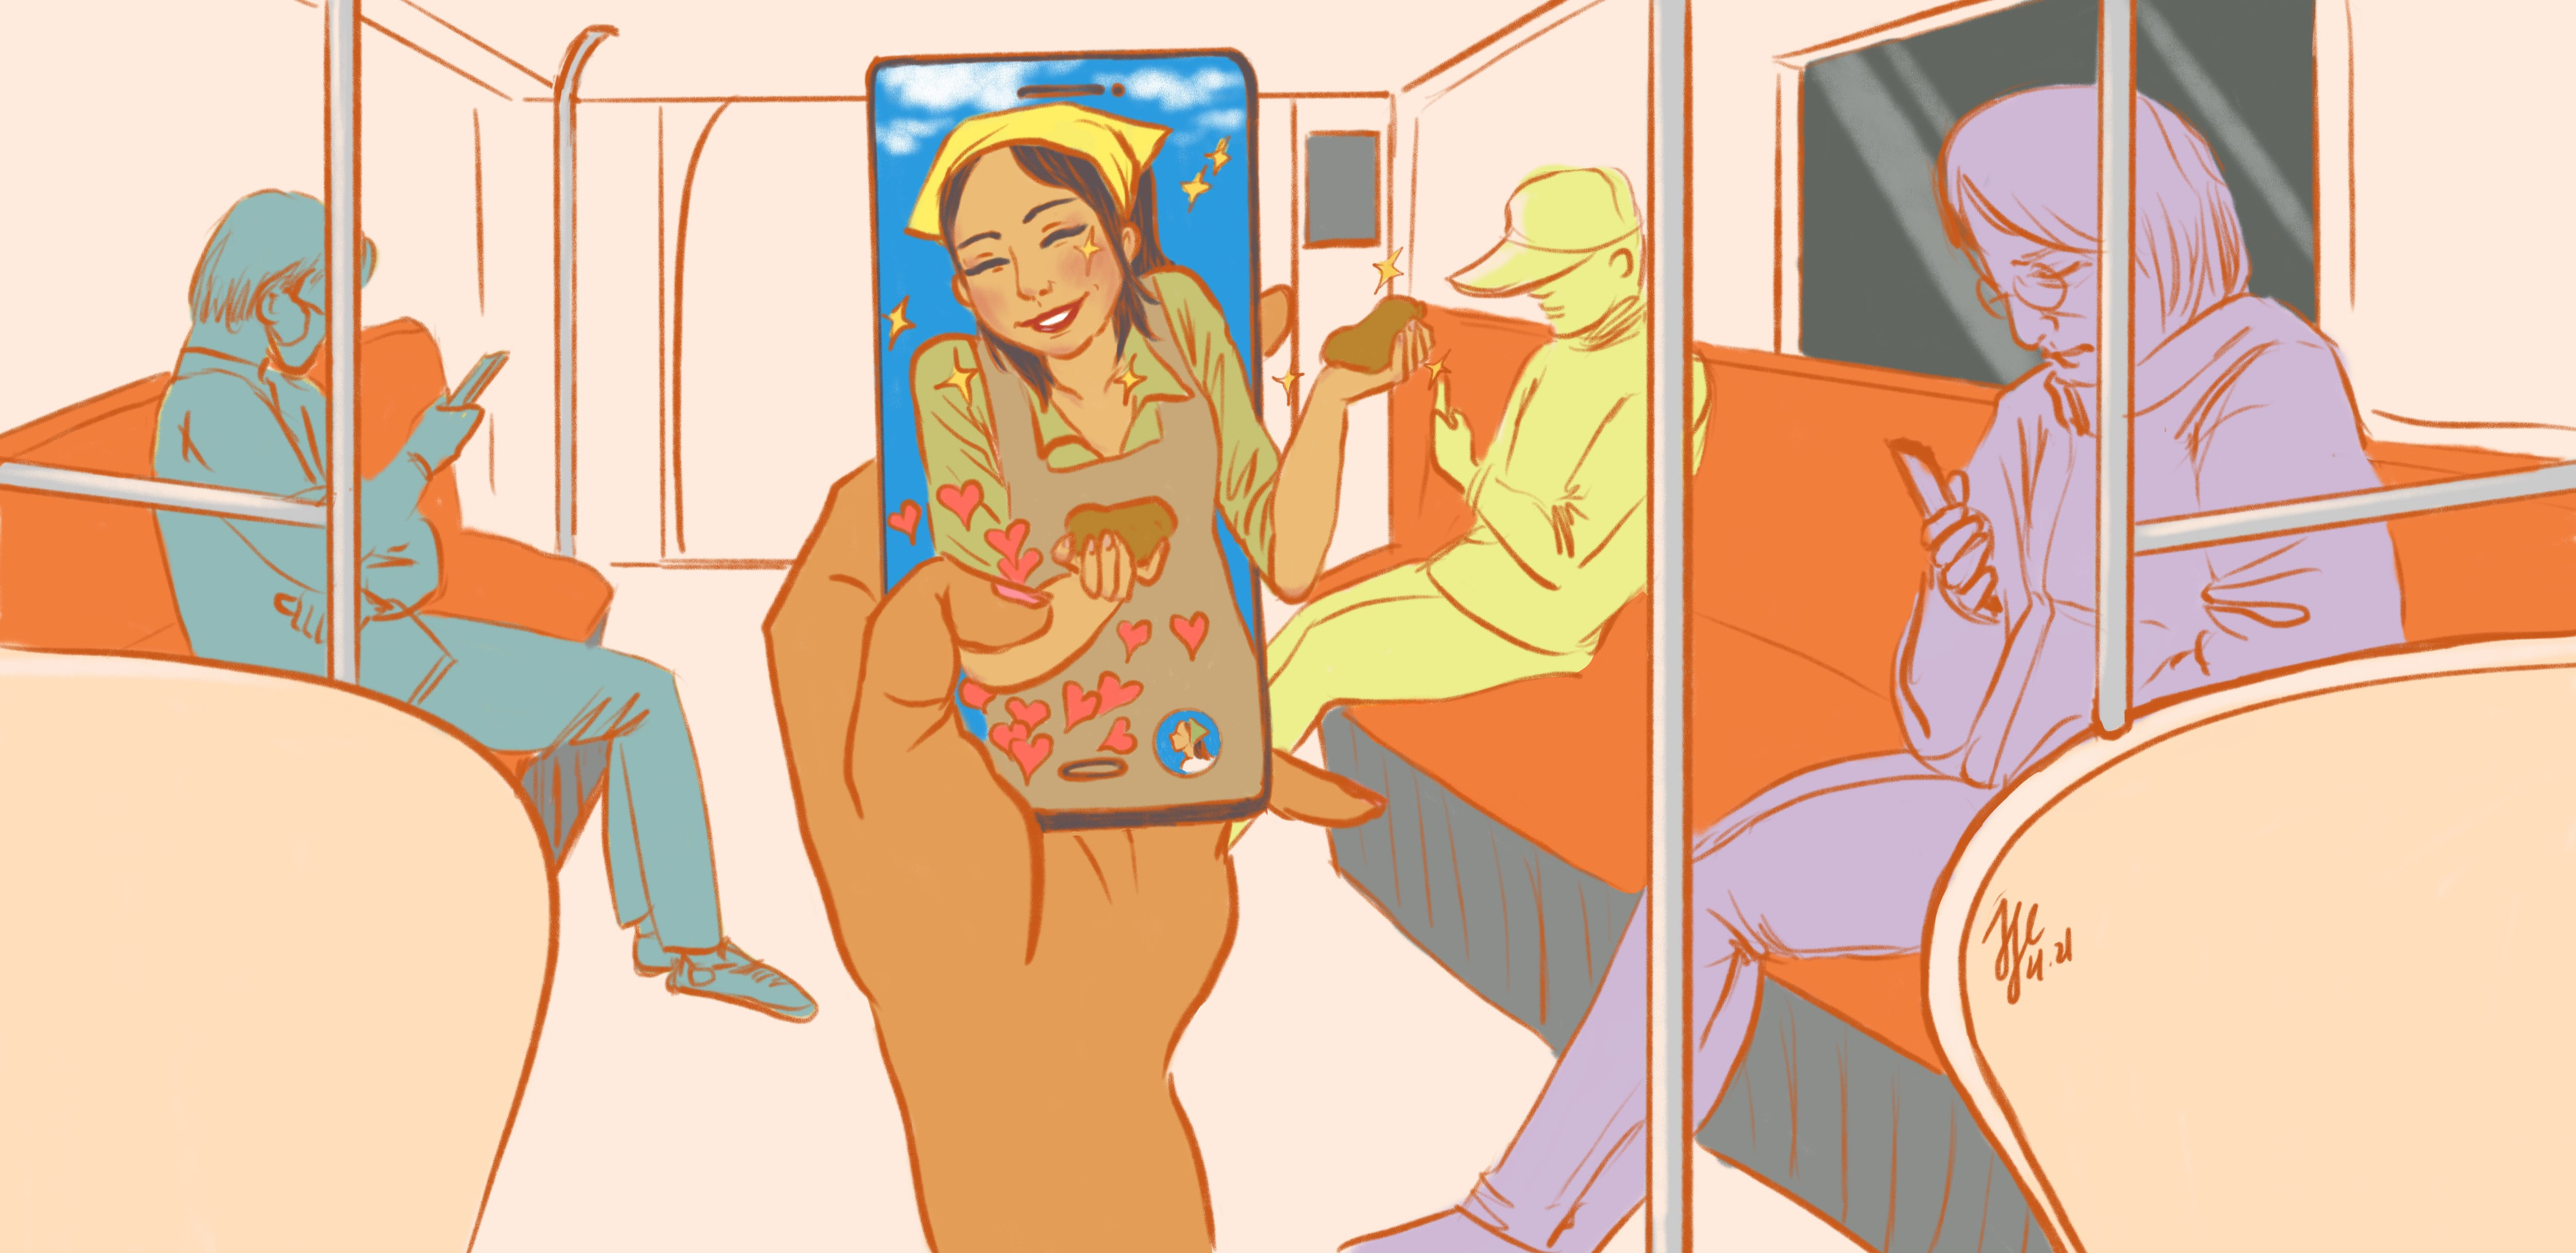 A hand holding up a phone that depicts a potato farmer selling her wares live, and receiving Likes. The disembodied person is on public transportation, where all other people are looking at their phones.